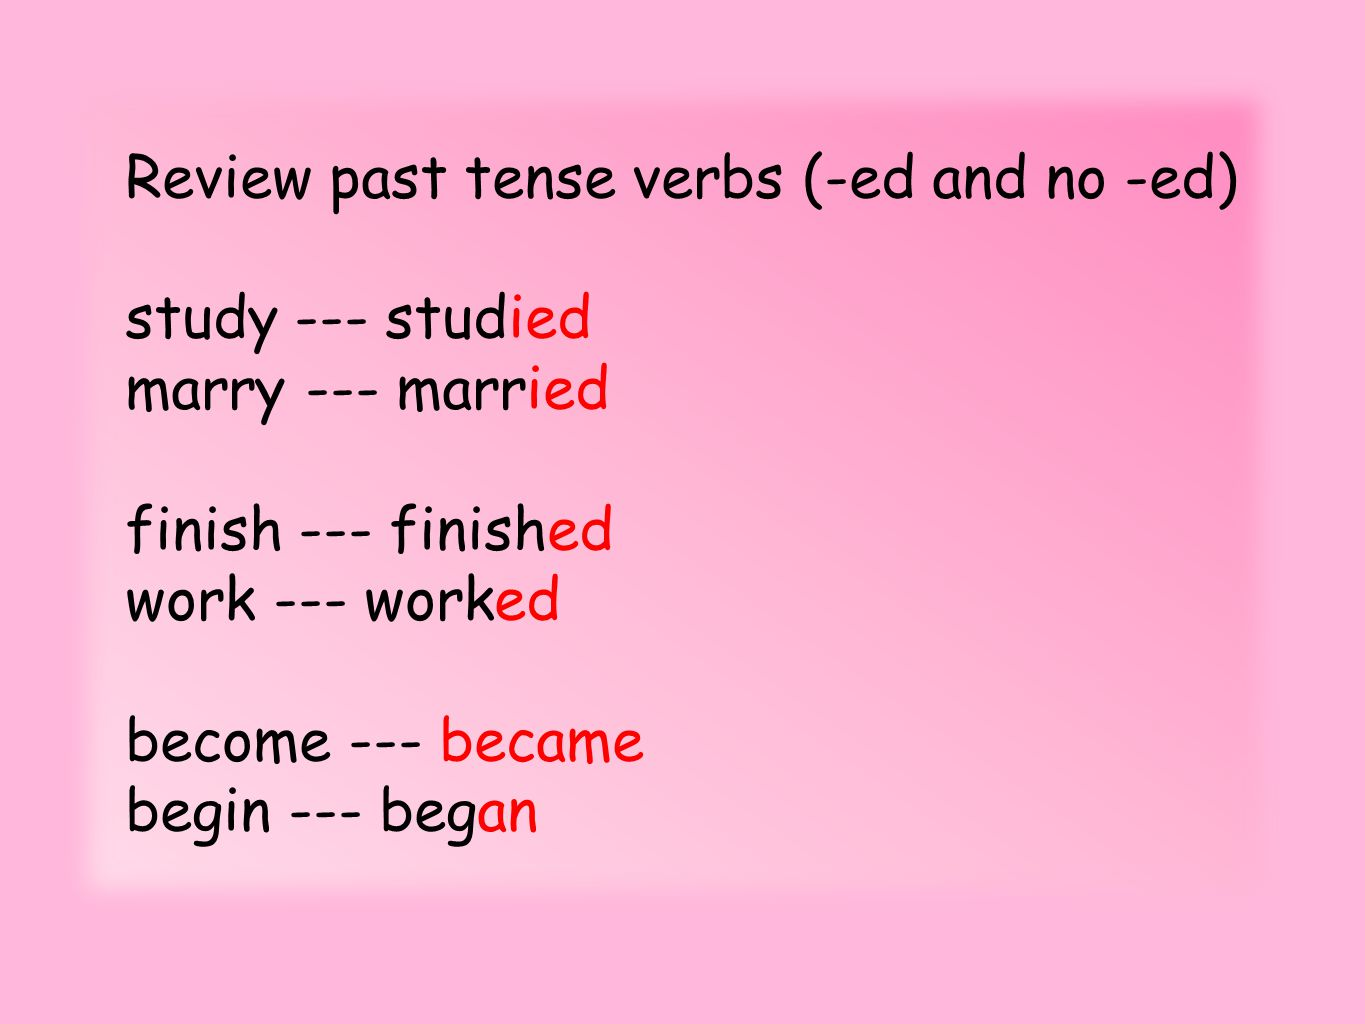 Review past tense verbs (-ed and no -ed) study --- studied marry --- married finish --- finished work --- worked become --- became begin --- began